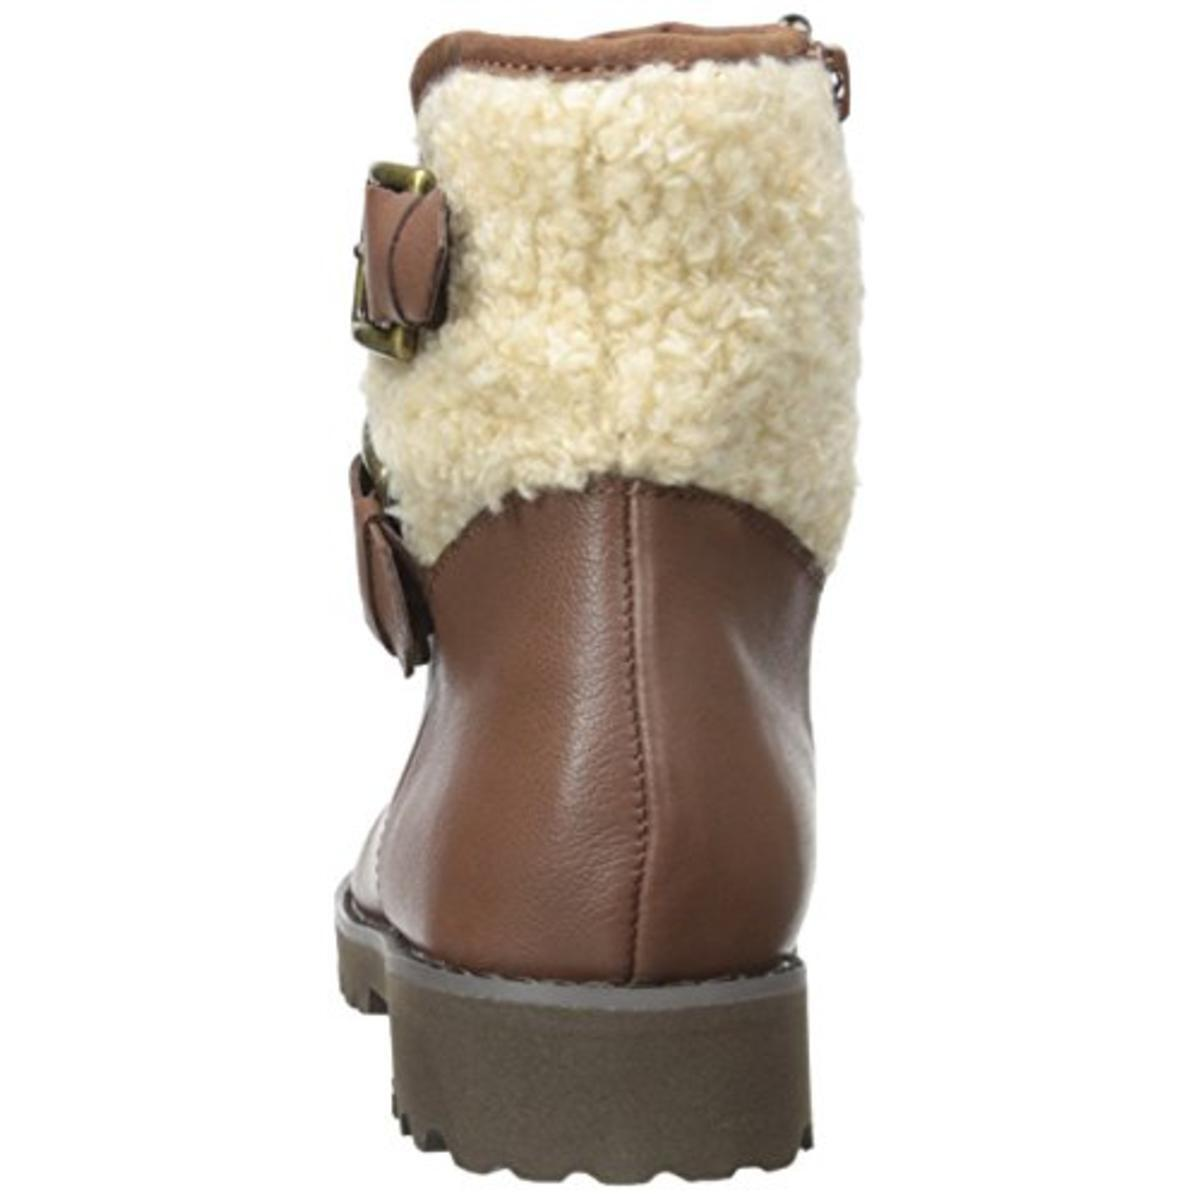 New EAST EAST EAST SPIRIT Brown Leather Brower Faux Fur Ankle Short Boots Booties 7.5 Med d3e522